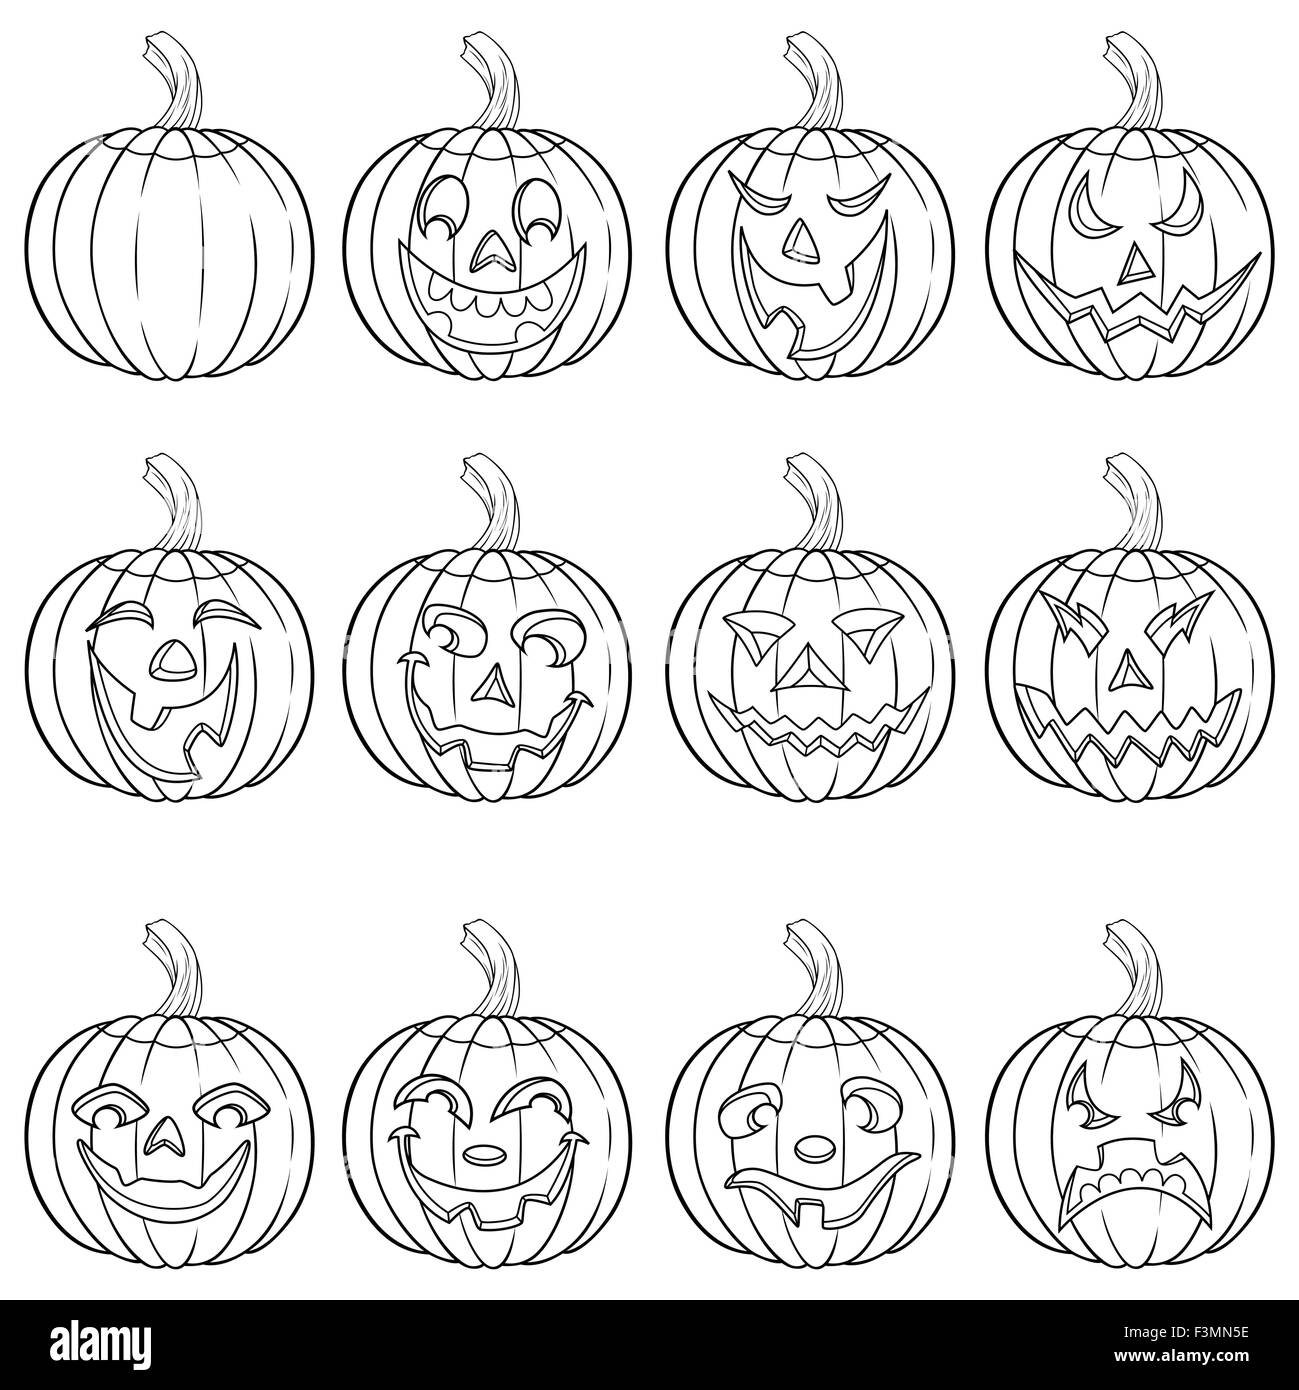 halloween set of six funny smiling pumpkin outlines with various